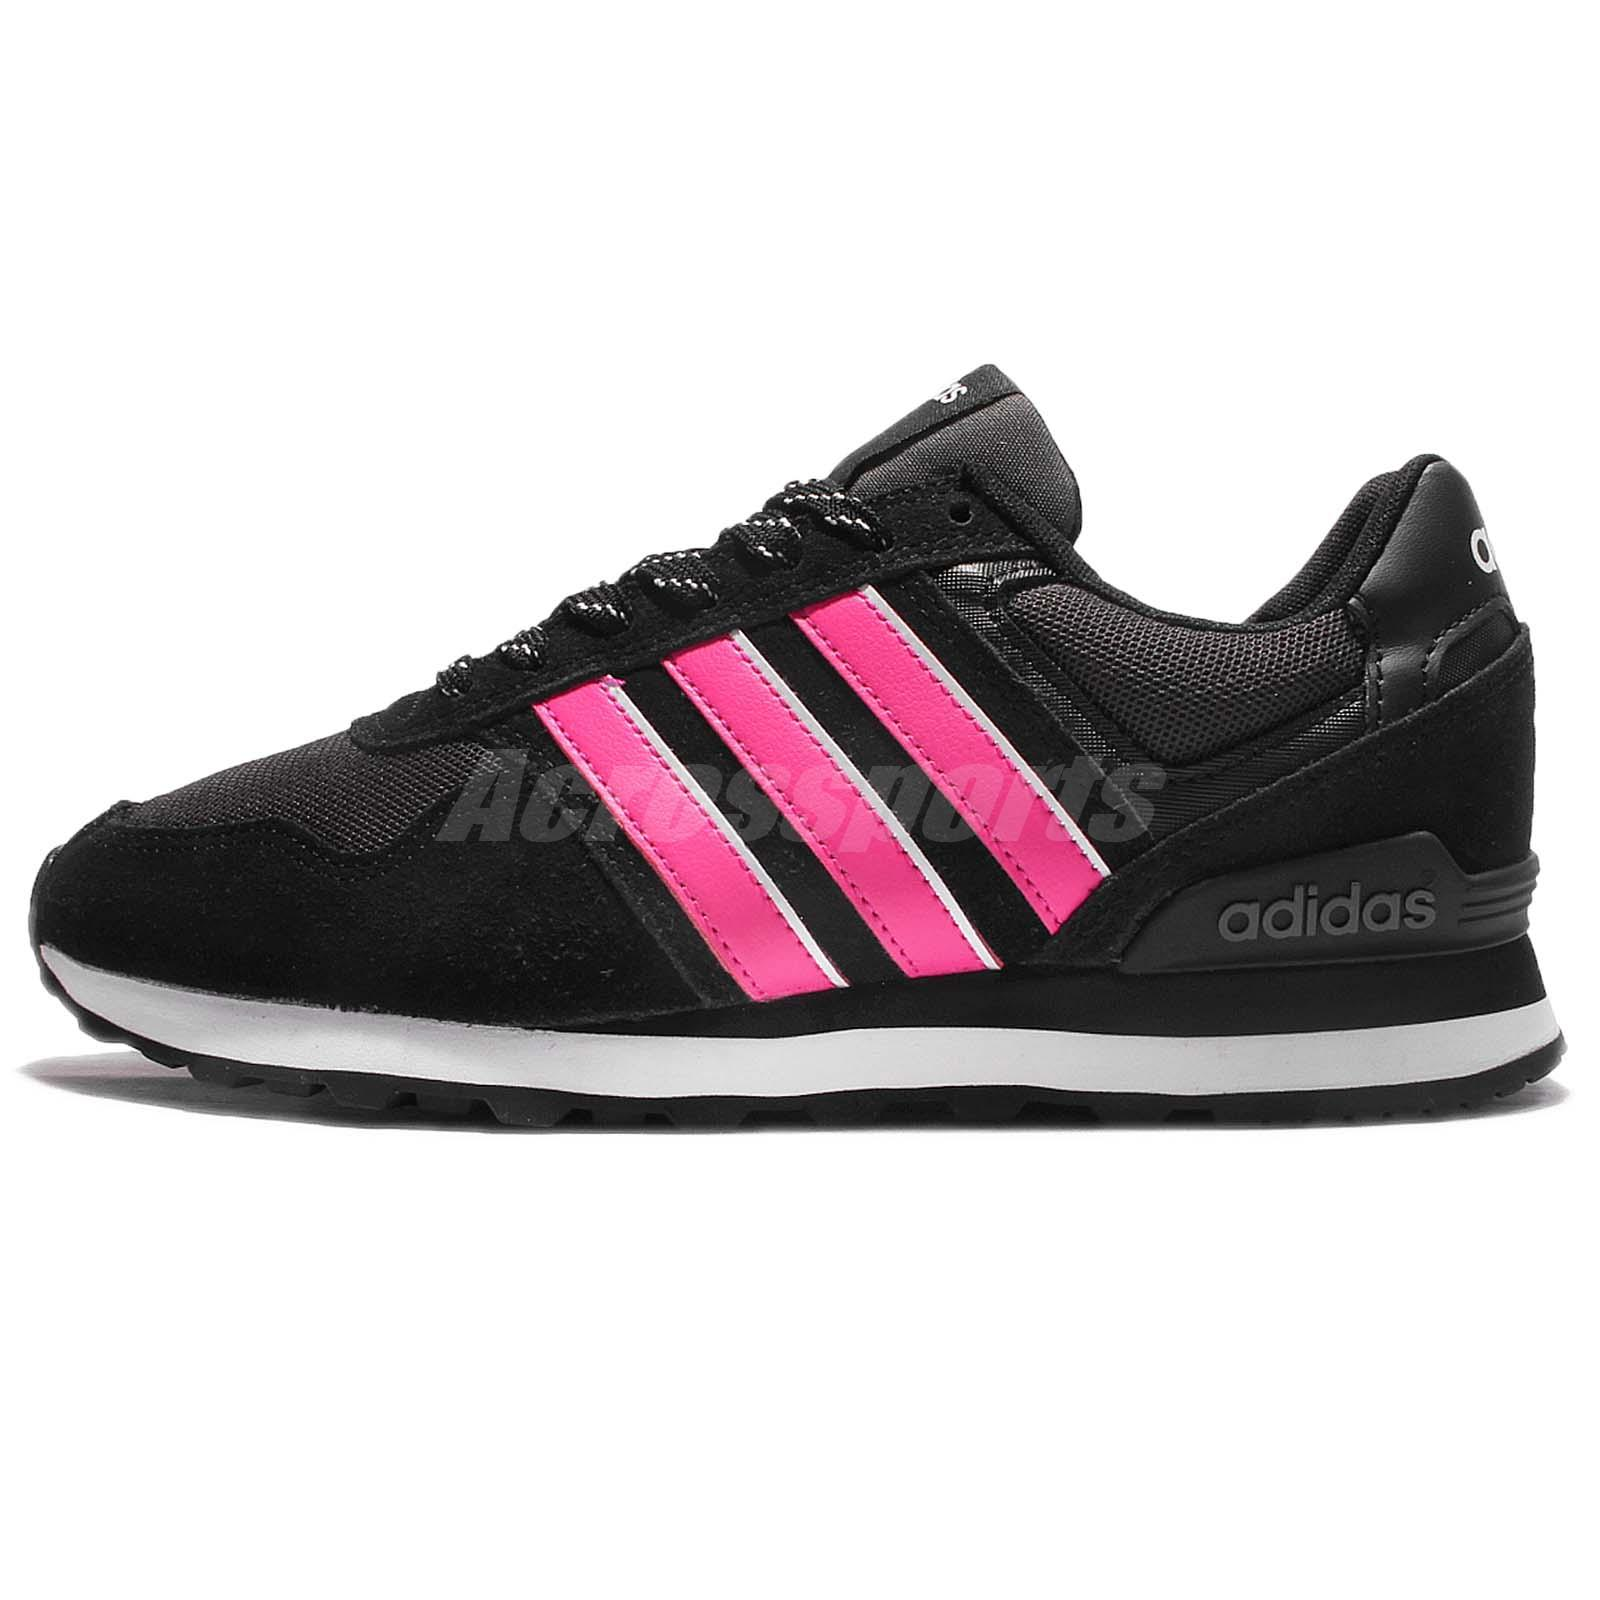 sale retailer b4525 587a6 adidas Neo Label 10K W Black Pink Women Classic Shoes Sneakers Trainers  B74714